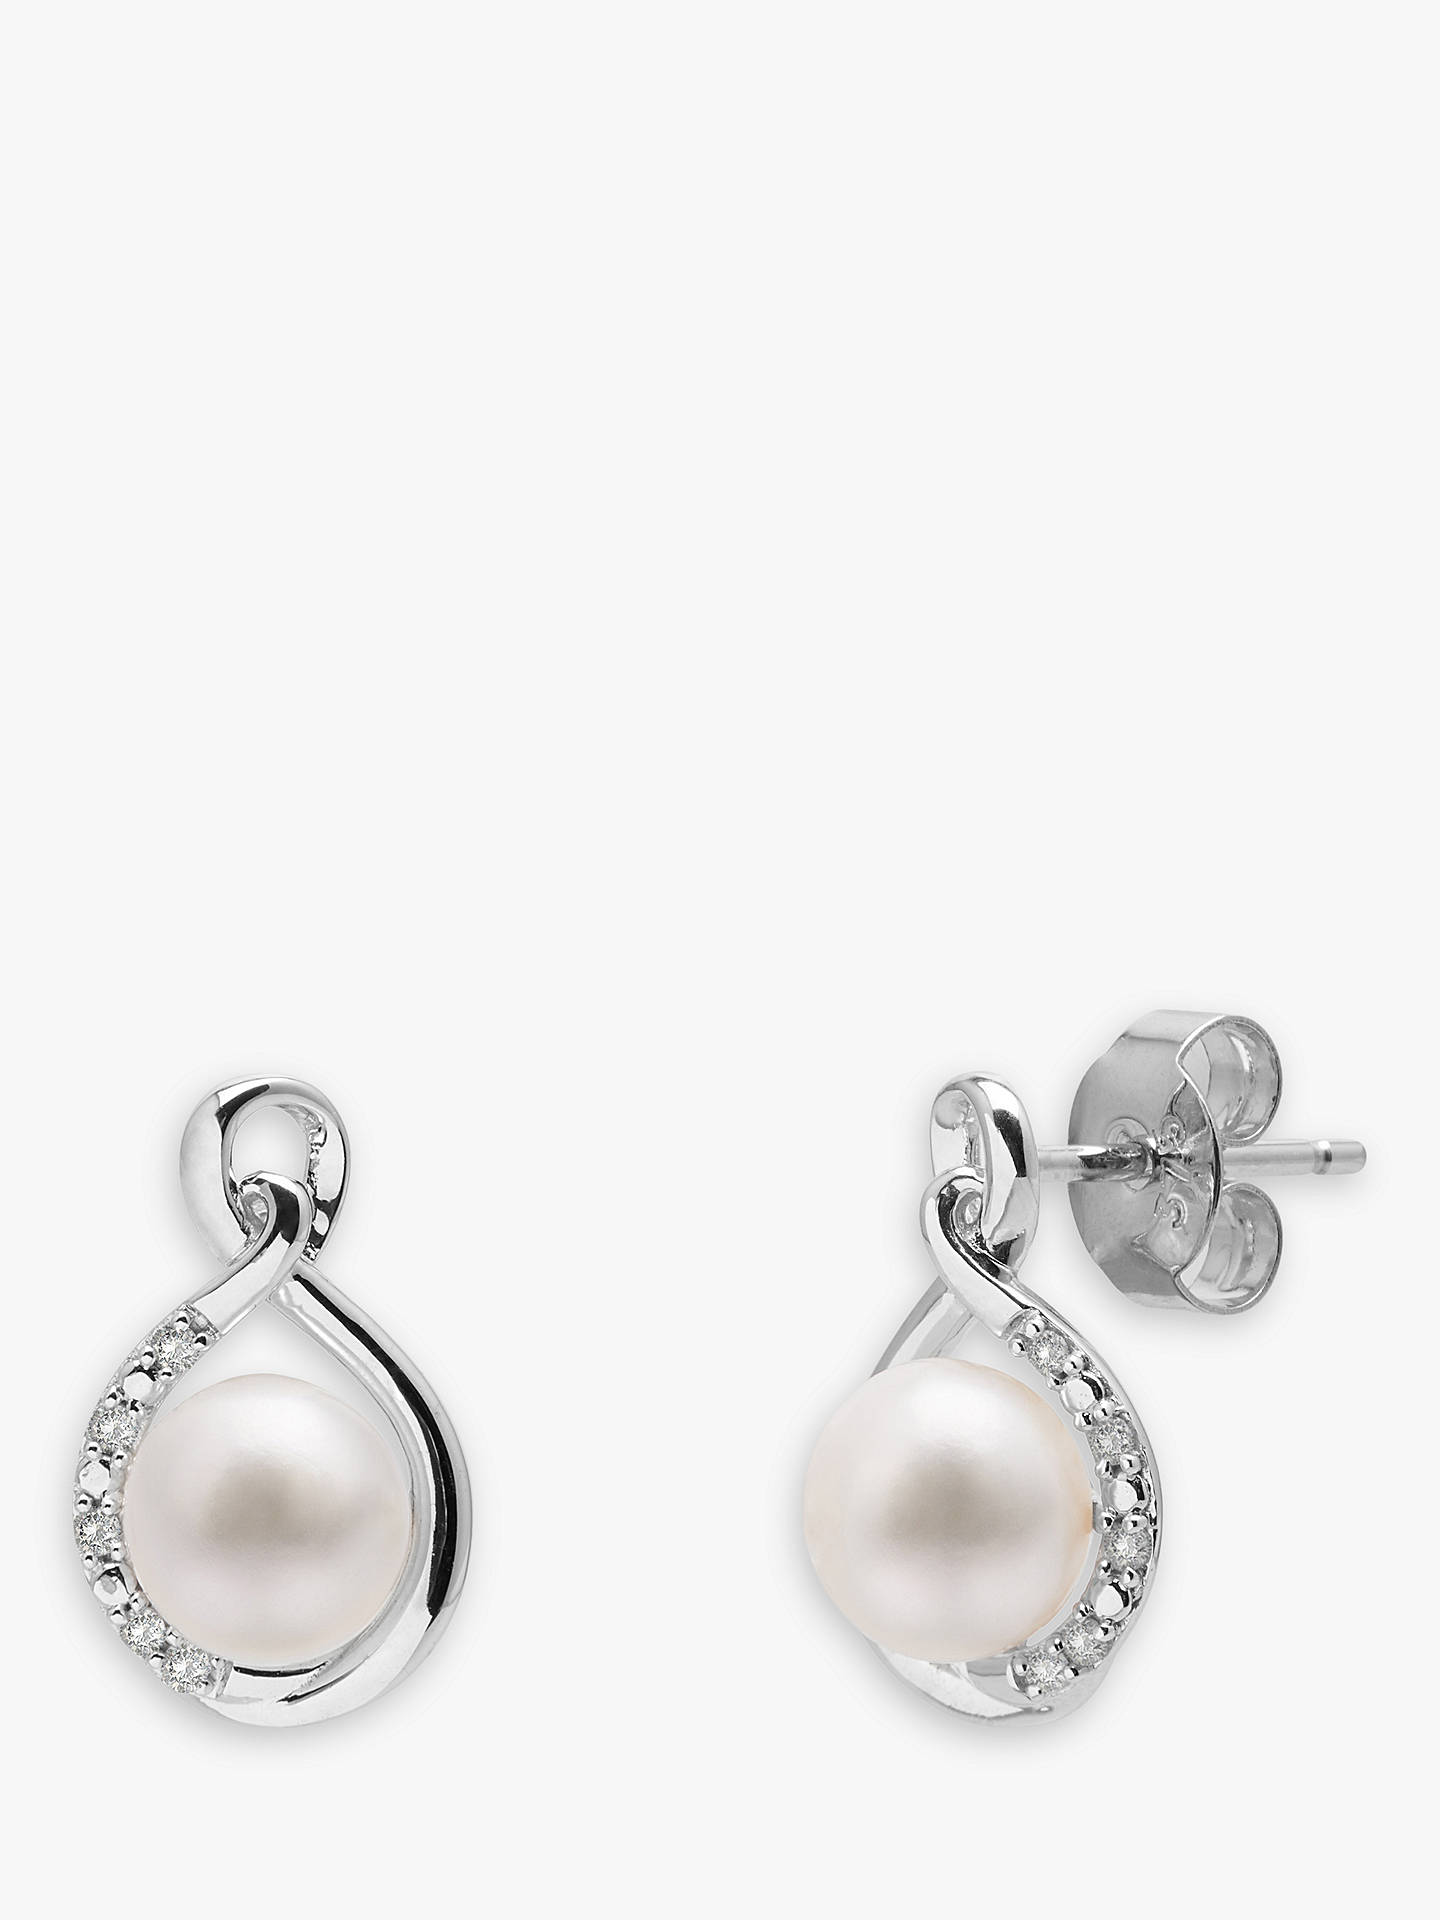 Buy A B Davis 9ct White Gold Freshwater Pearl and Diamond Stud Earrings, White Online at johnlewis.com